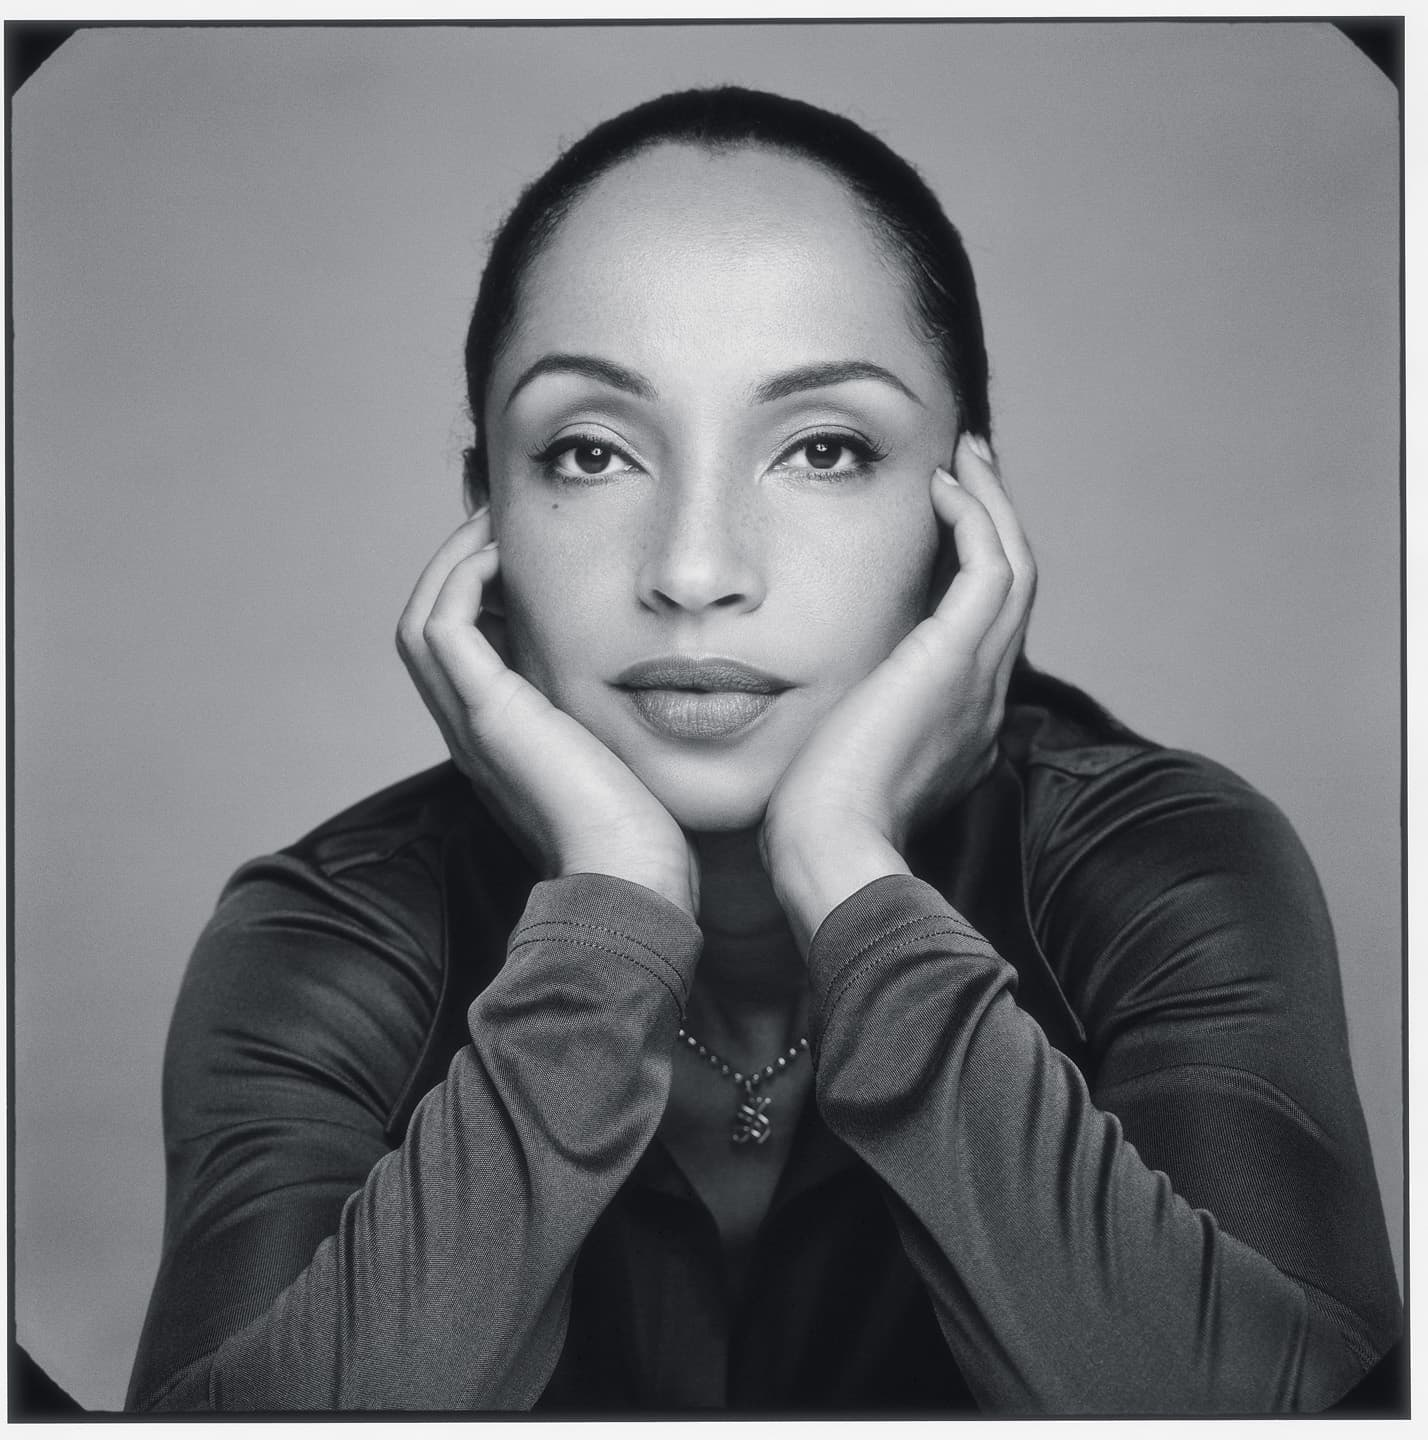 Sade S Complex Relationship With Fame Can Still Teach Us Something 15 Years Later The Fader